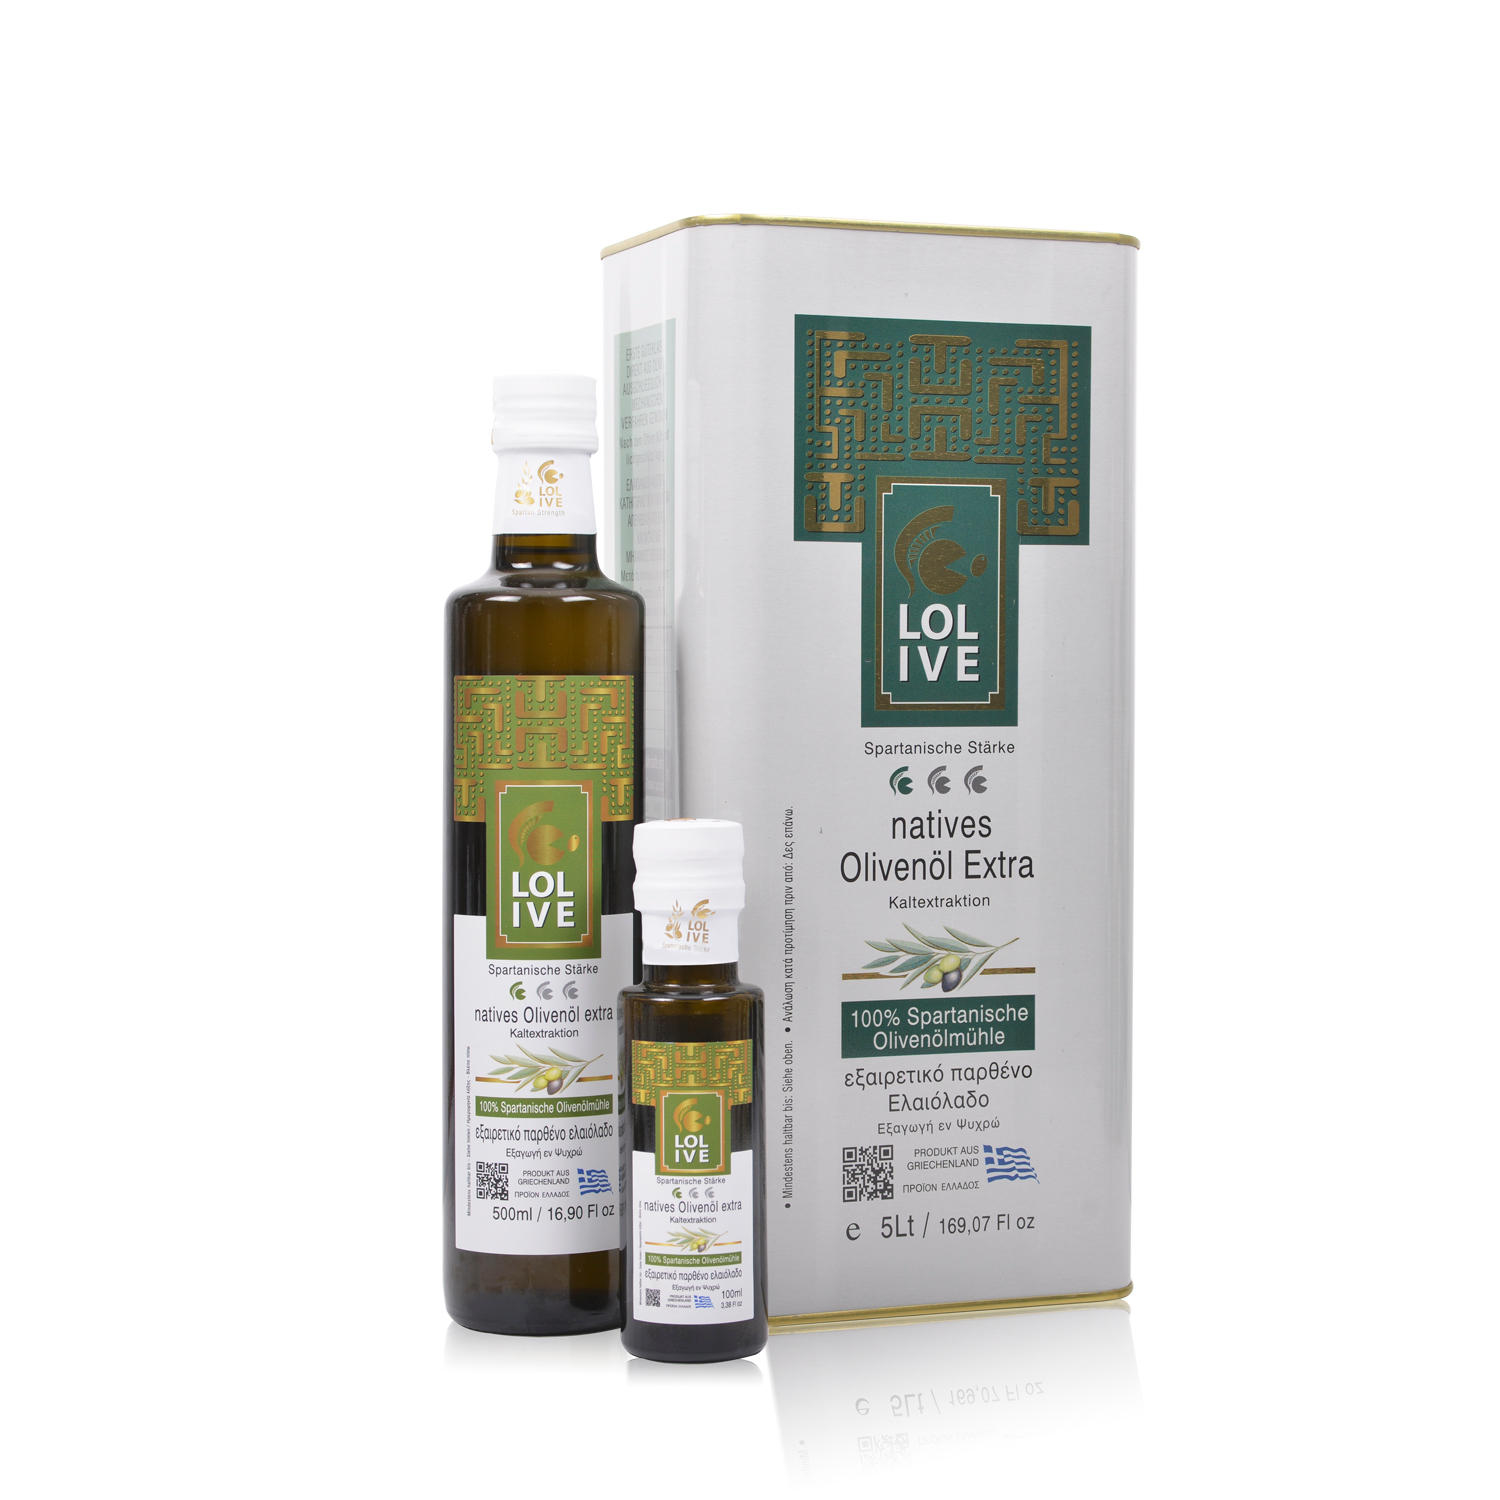 LOLIVE - Skoura Olive Oil Mill - SS1 Family